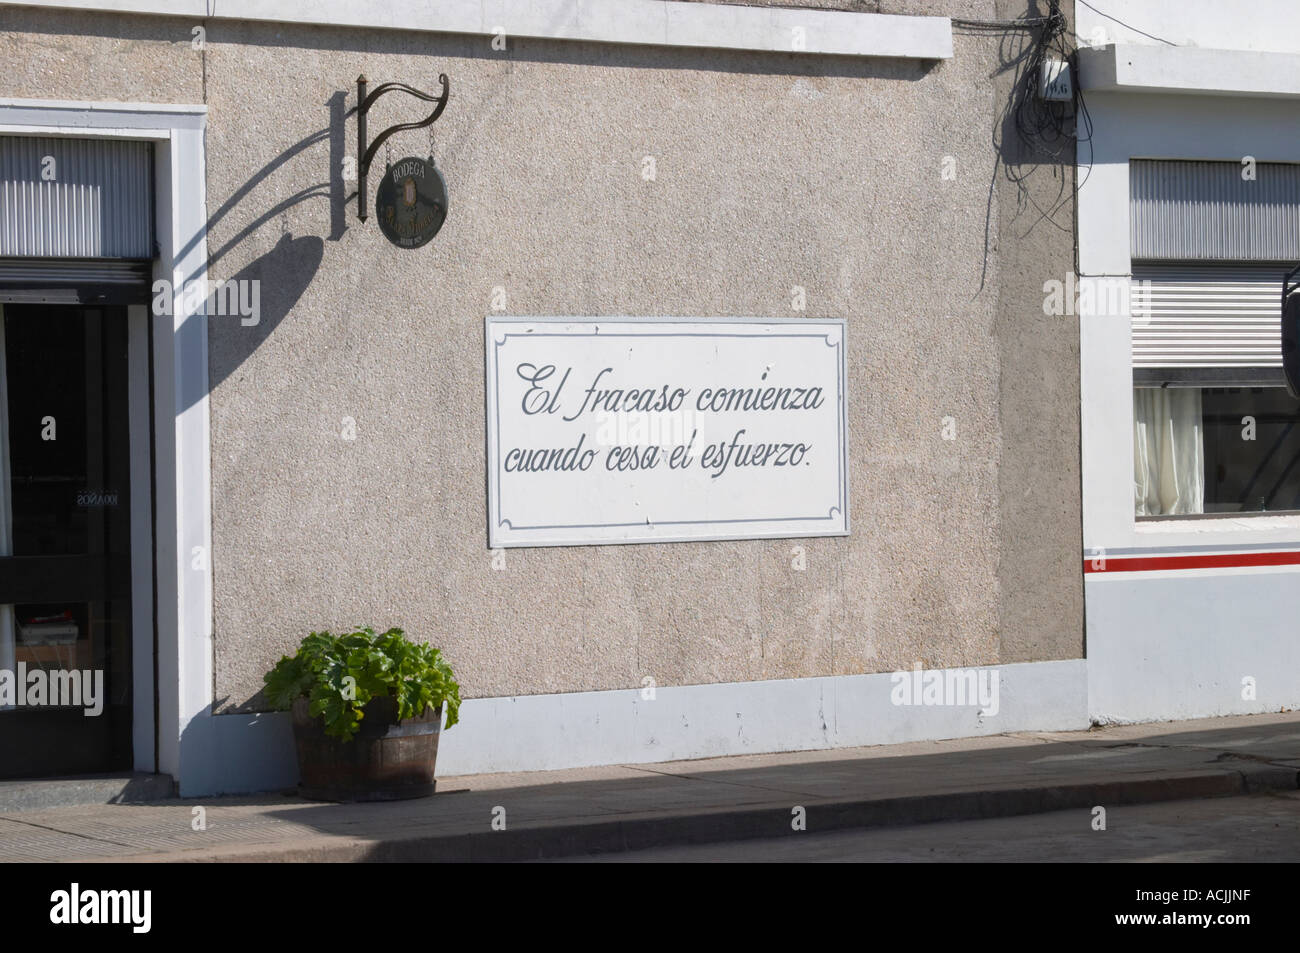 A sign on the outside of the winery saying El frasco comienza cuando cesa el esfuerzo - the decline (fiasco) starts when you cease to make an effort. Bodega Plaza Vidiella Winery, Las Brujas, Canelones, Uruguay, South America - Stock Image